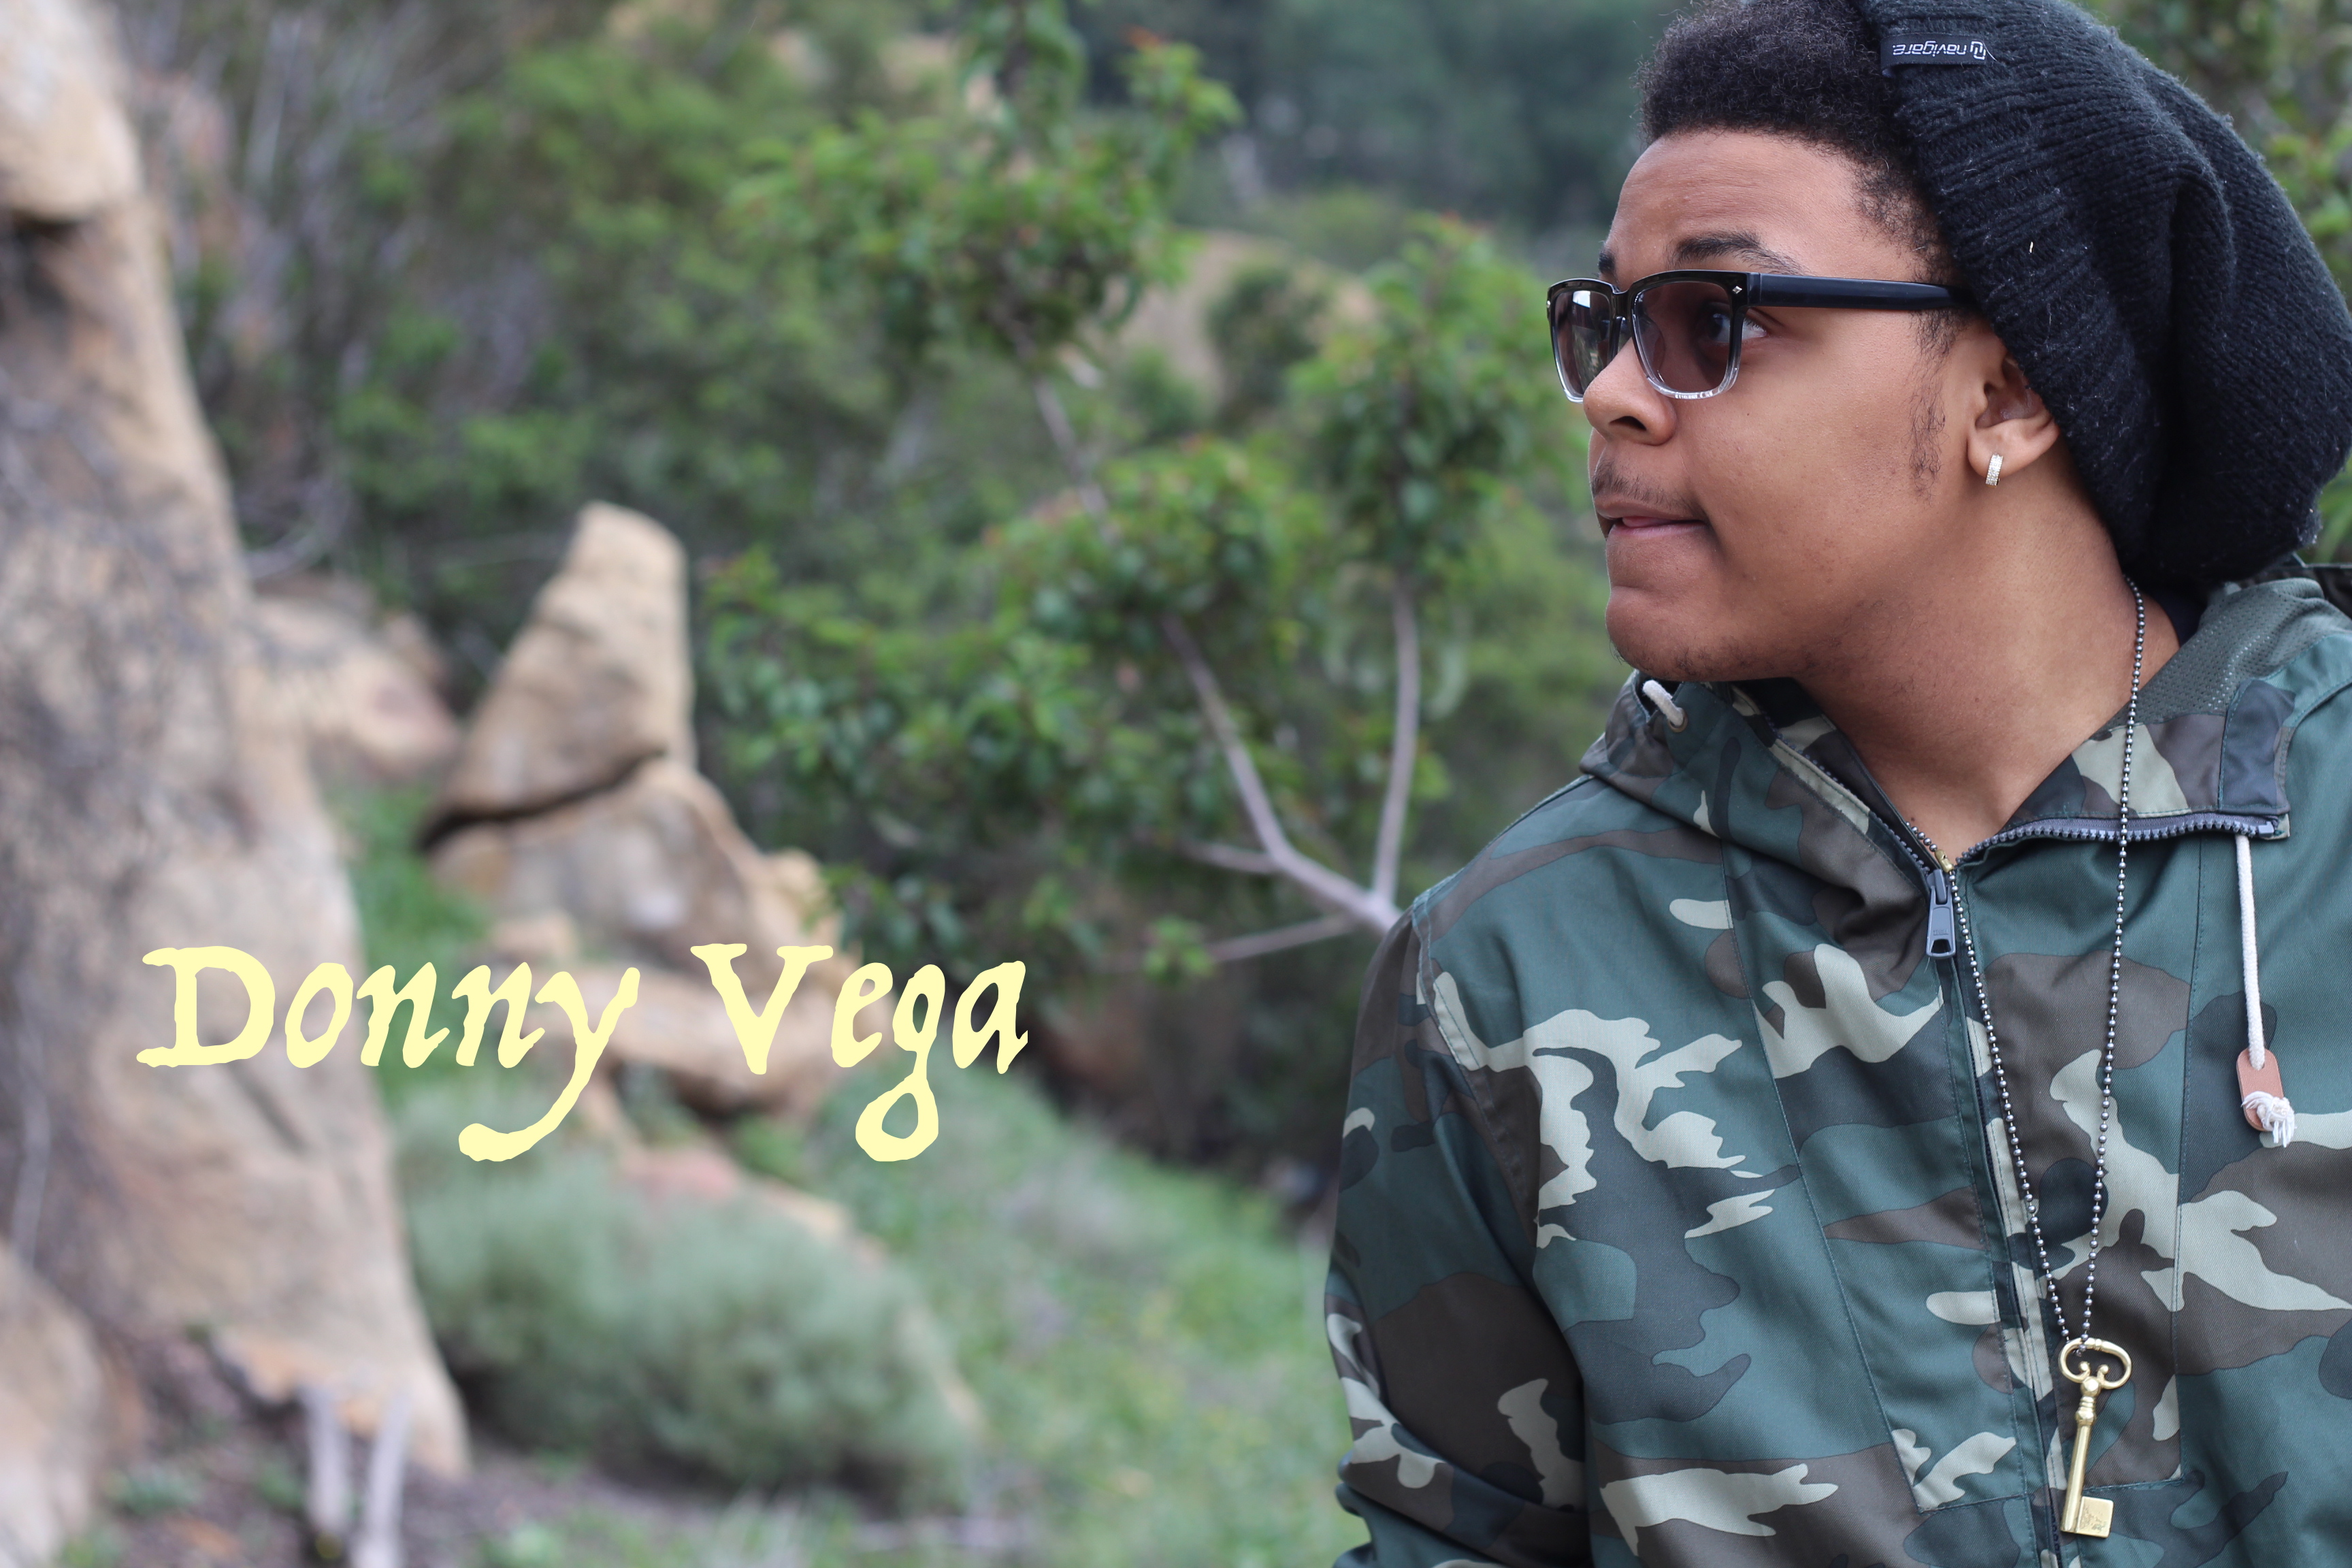 Indie Artist Donny Vega is Chasing His Dream